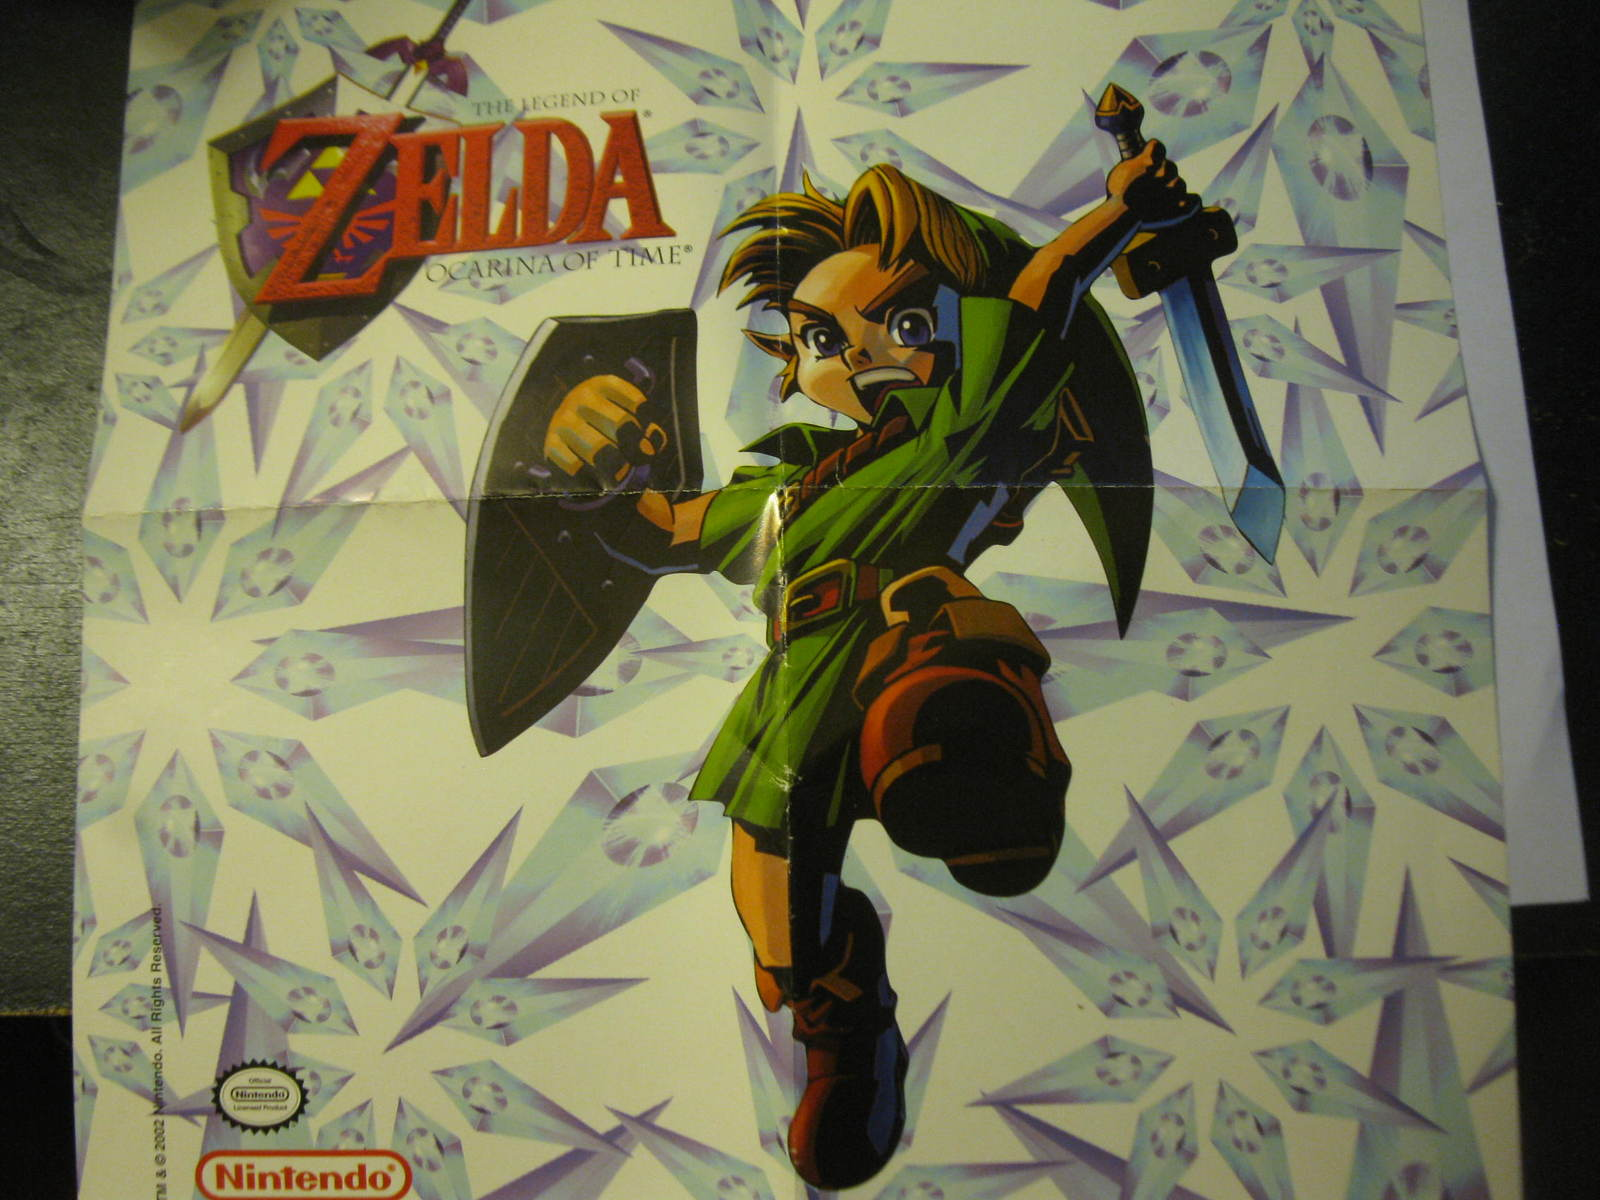 "Primary image for (MX-5) Vintage Nintendo 64 Poster: Legend of Zelda Ocarina of Time - 12"" x 12"""